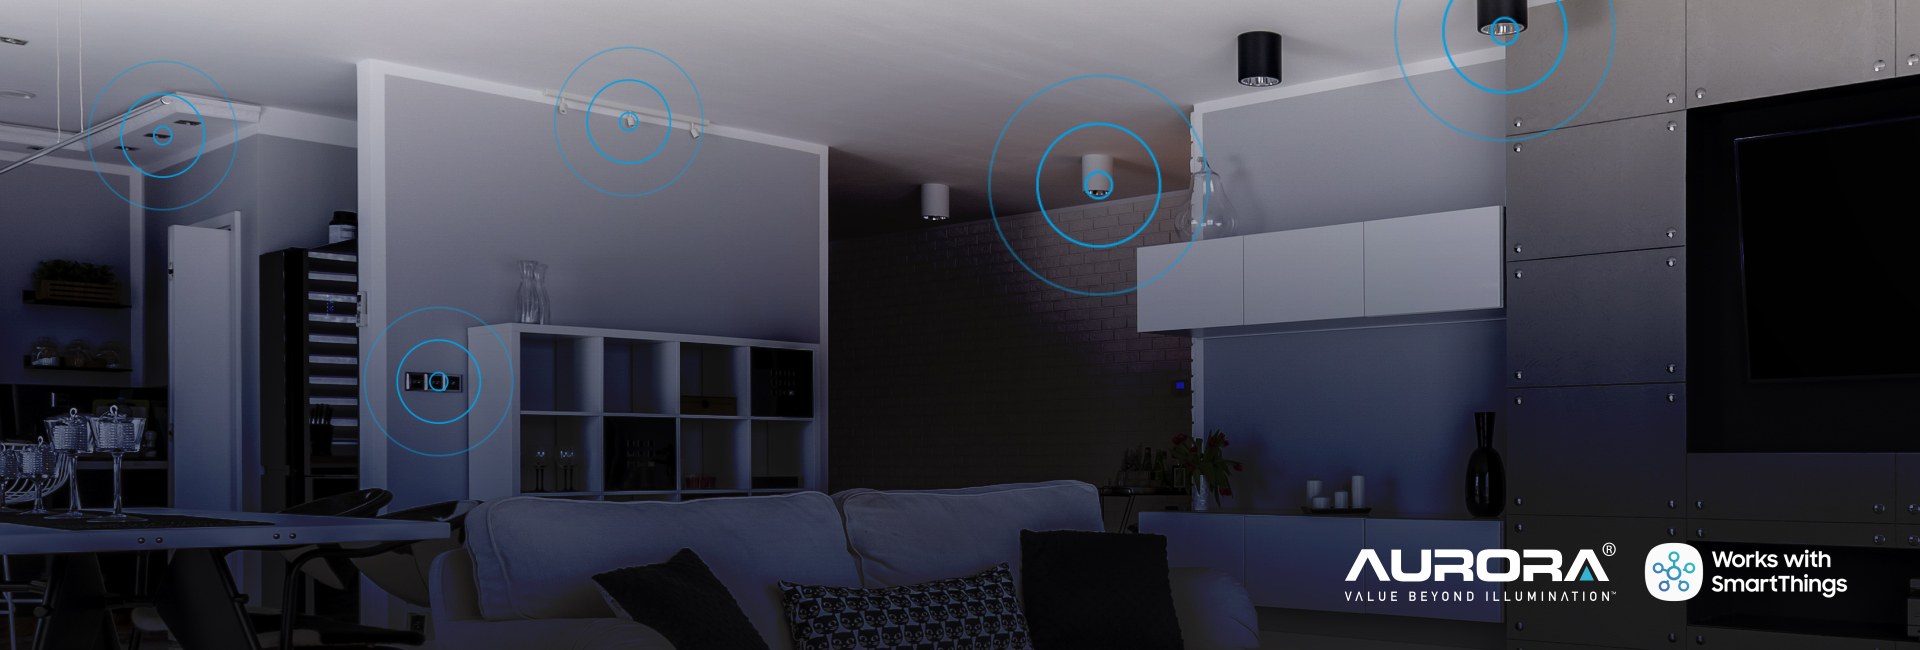 Show products in category Aurora launches into SmartThings Stratosphere